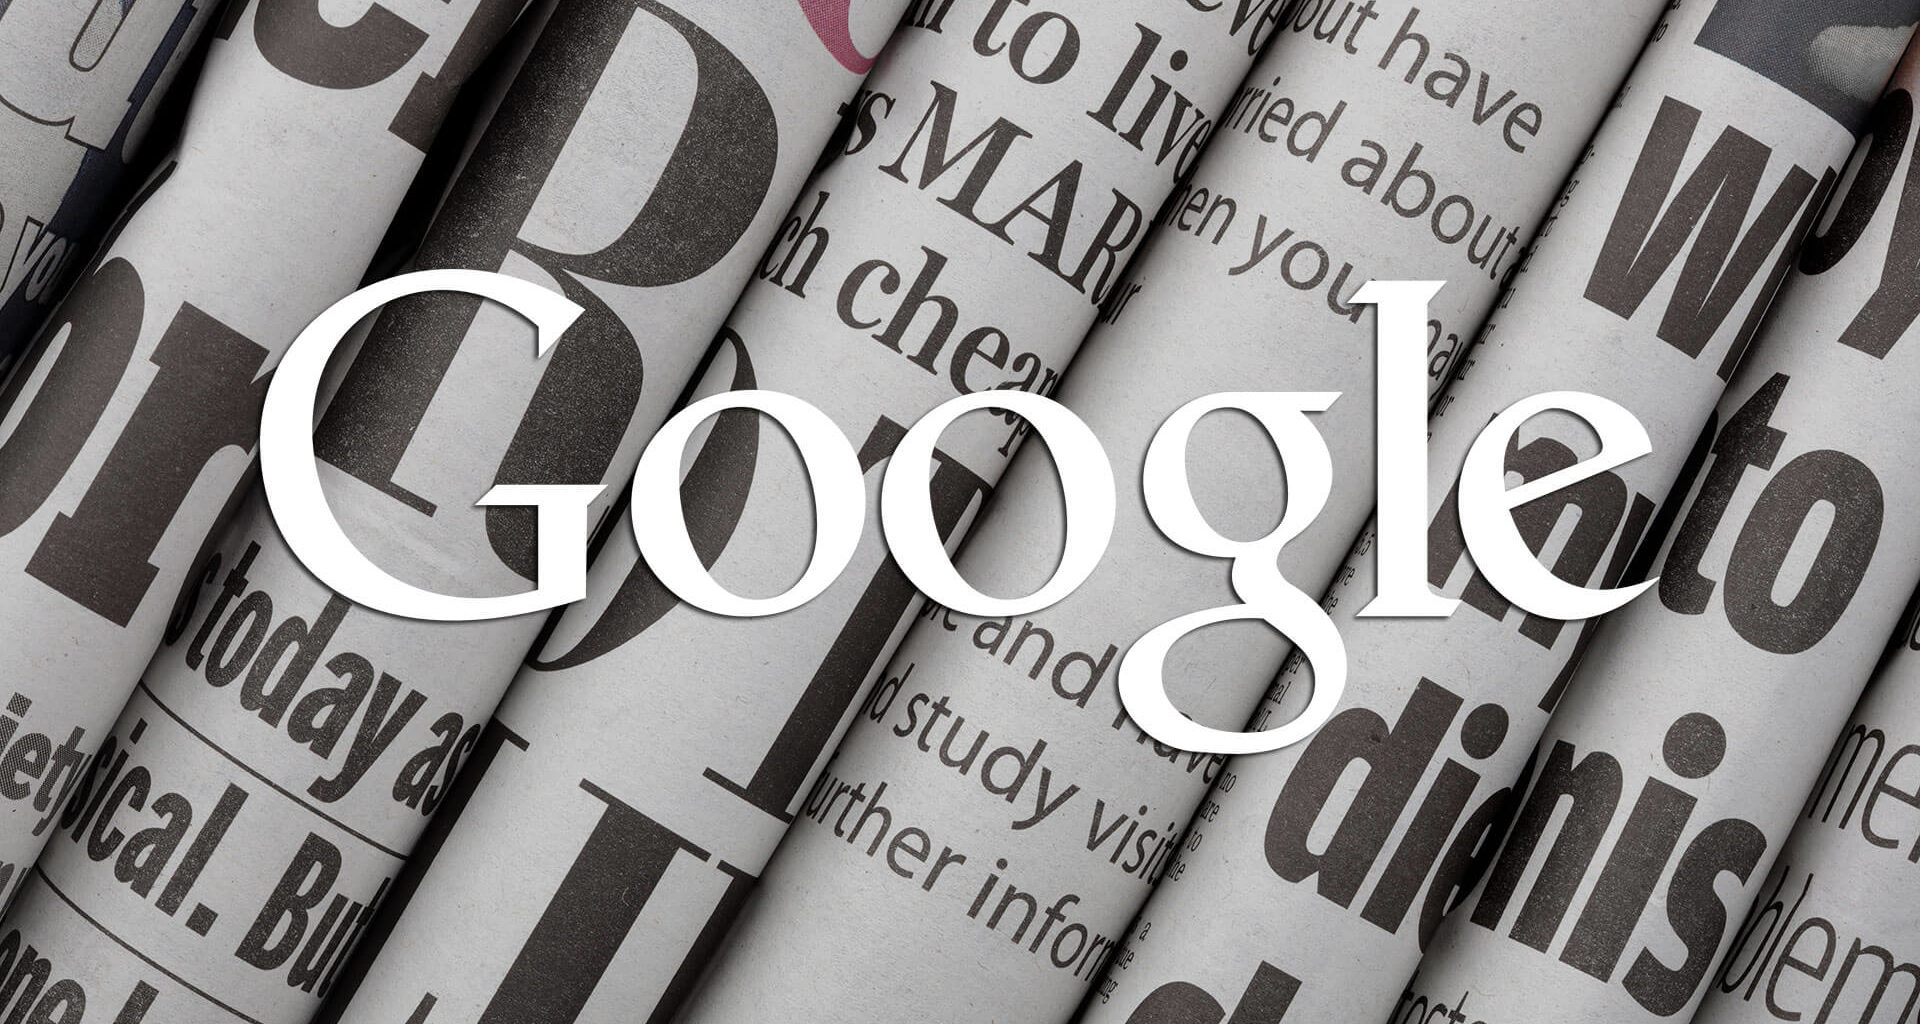 Google News going to offer free access to paywalled articles from news publications